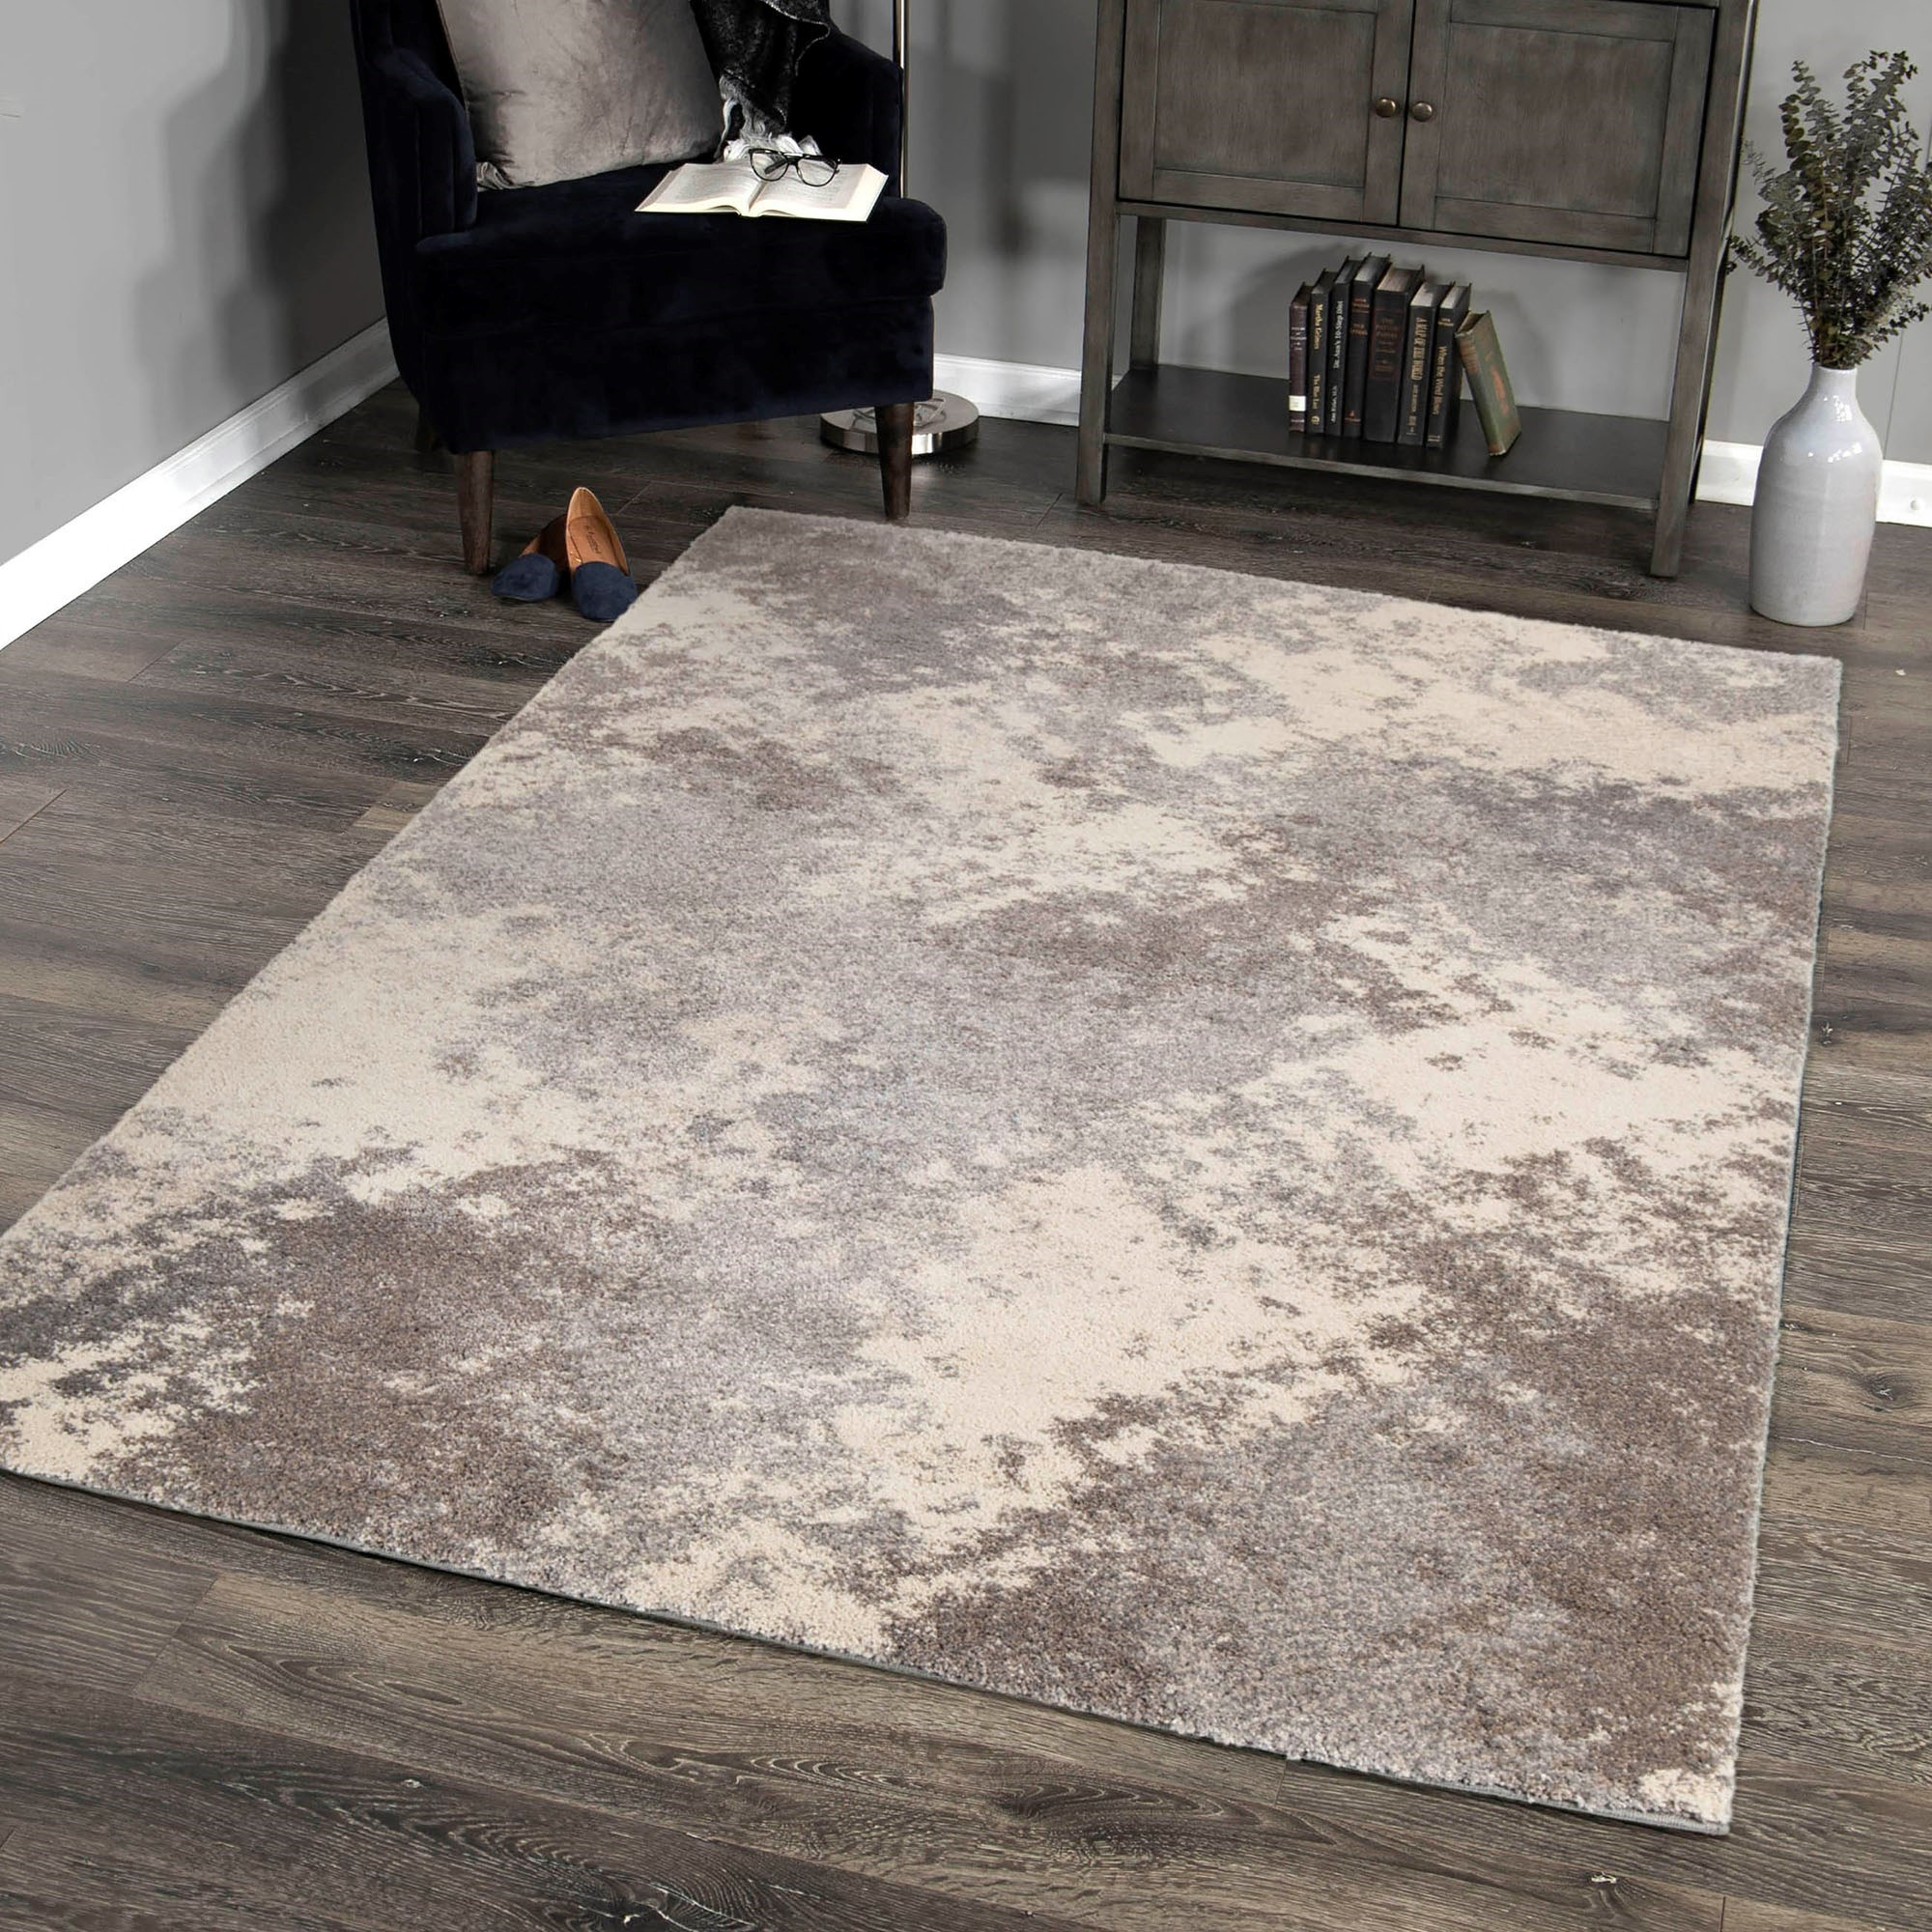 Accent Piece For Wall 5x8: Airhaven Contemporary 5x8 Area Rug In Cream/Grey